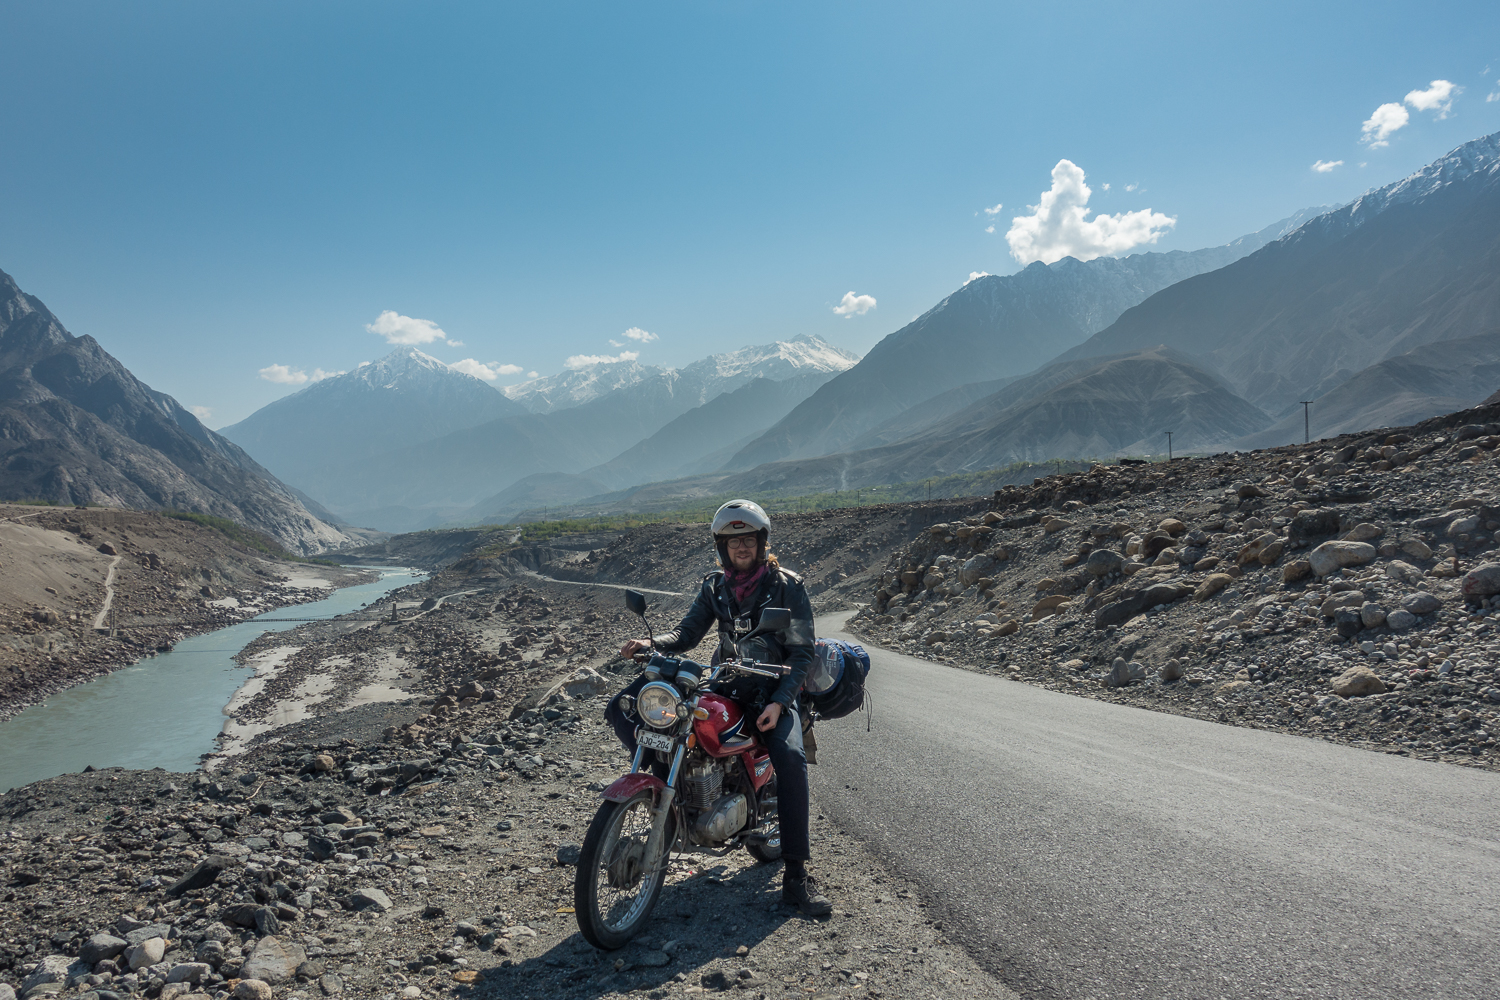 Me with my bike on the famous Karakoram Highway